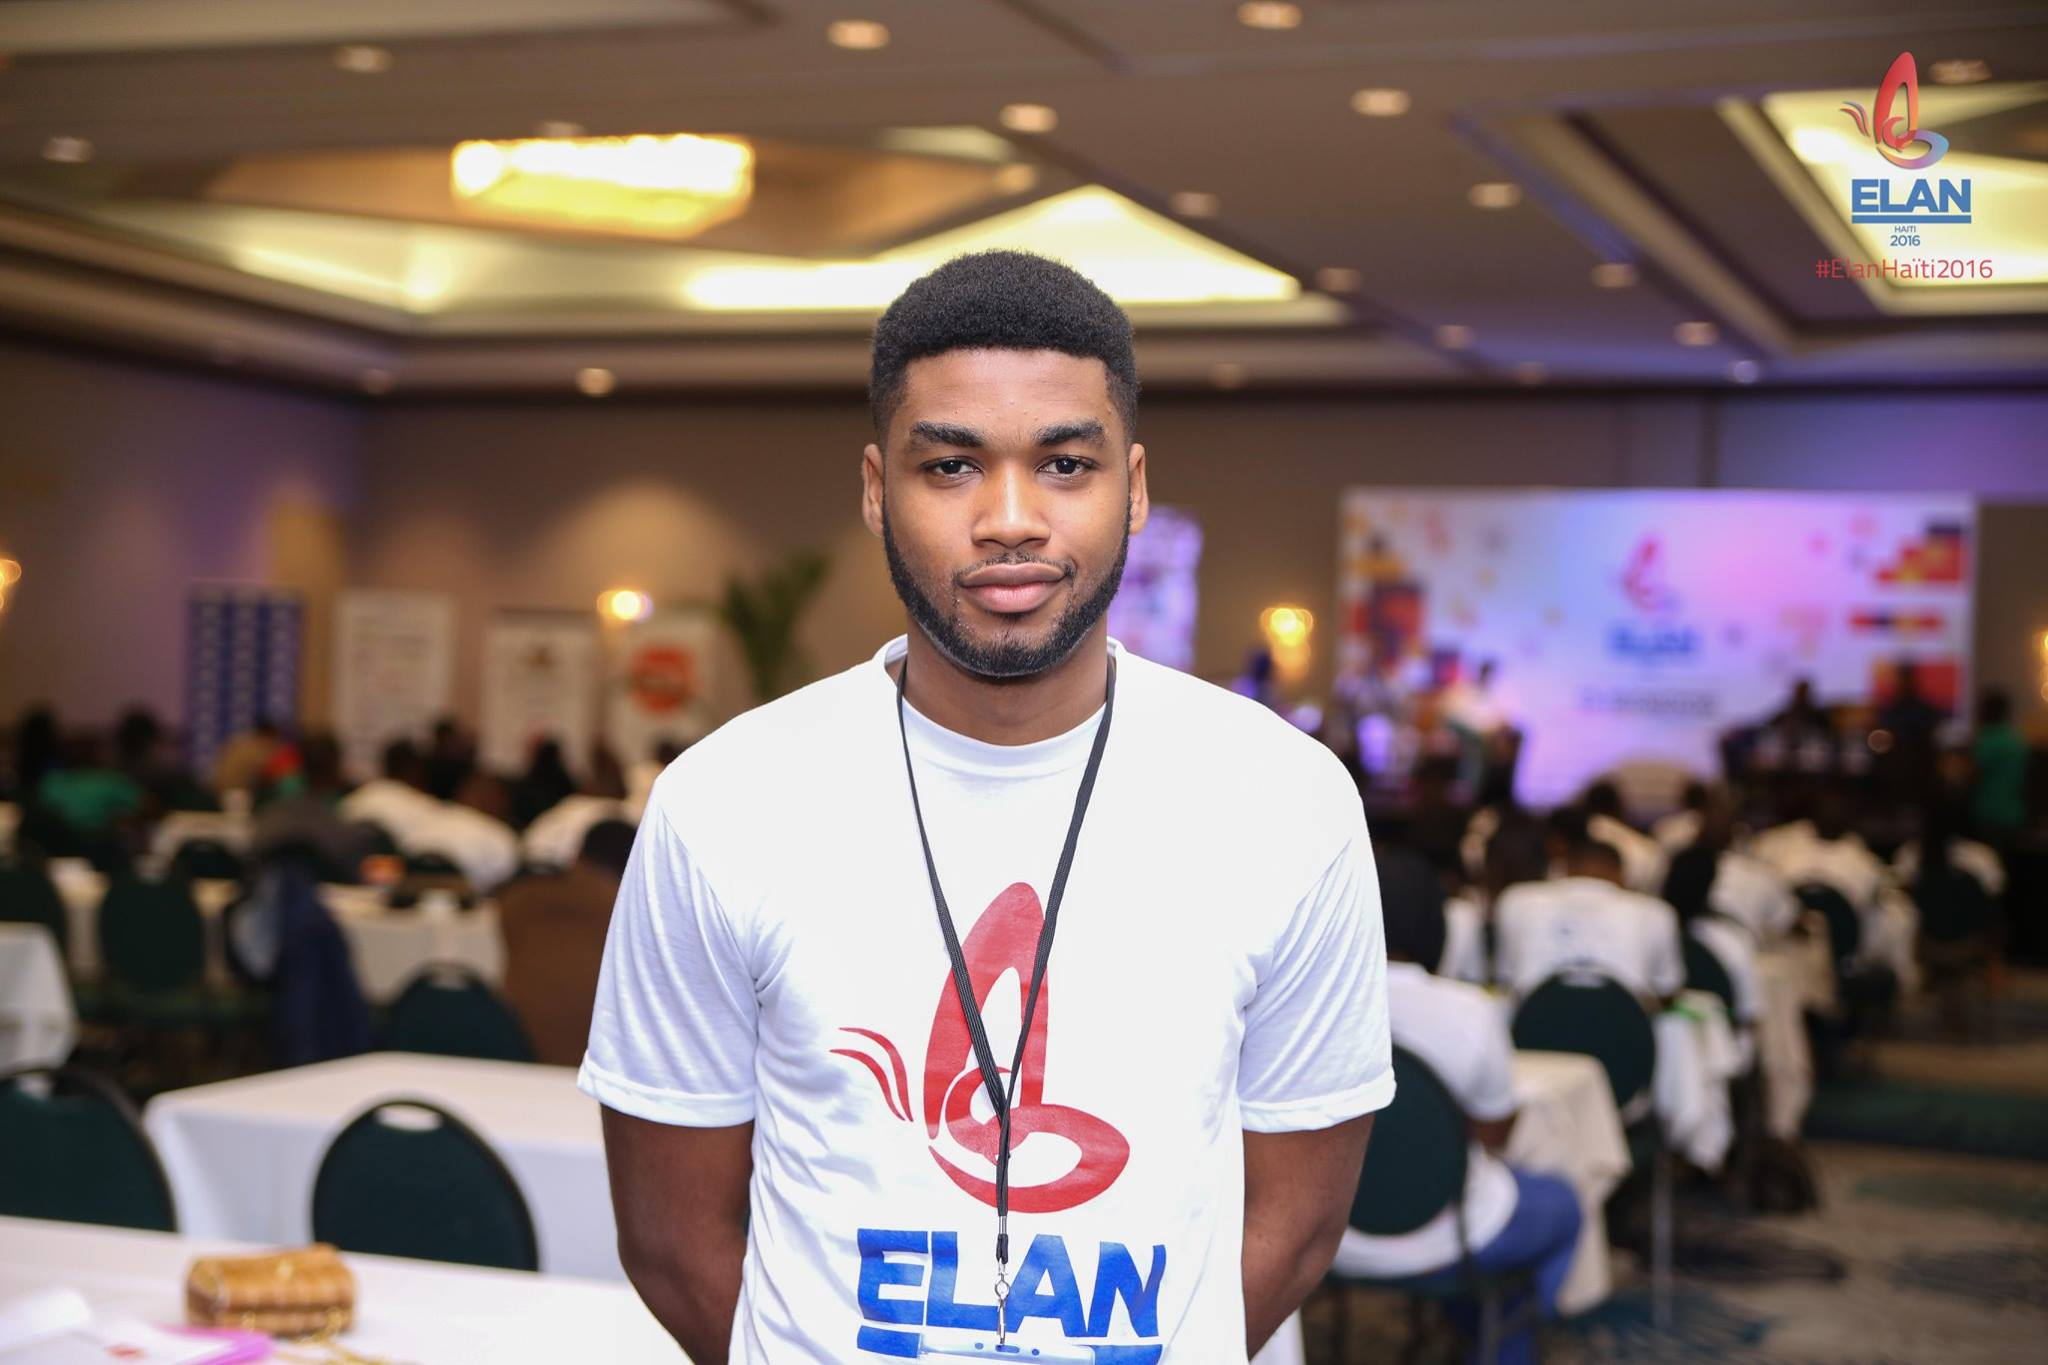 ELAN Haiti International Youth Symposium 2018 in Jacmel, Haiti